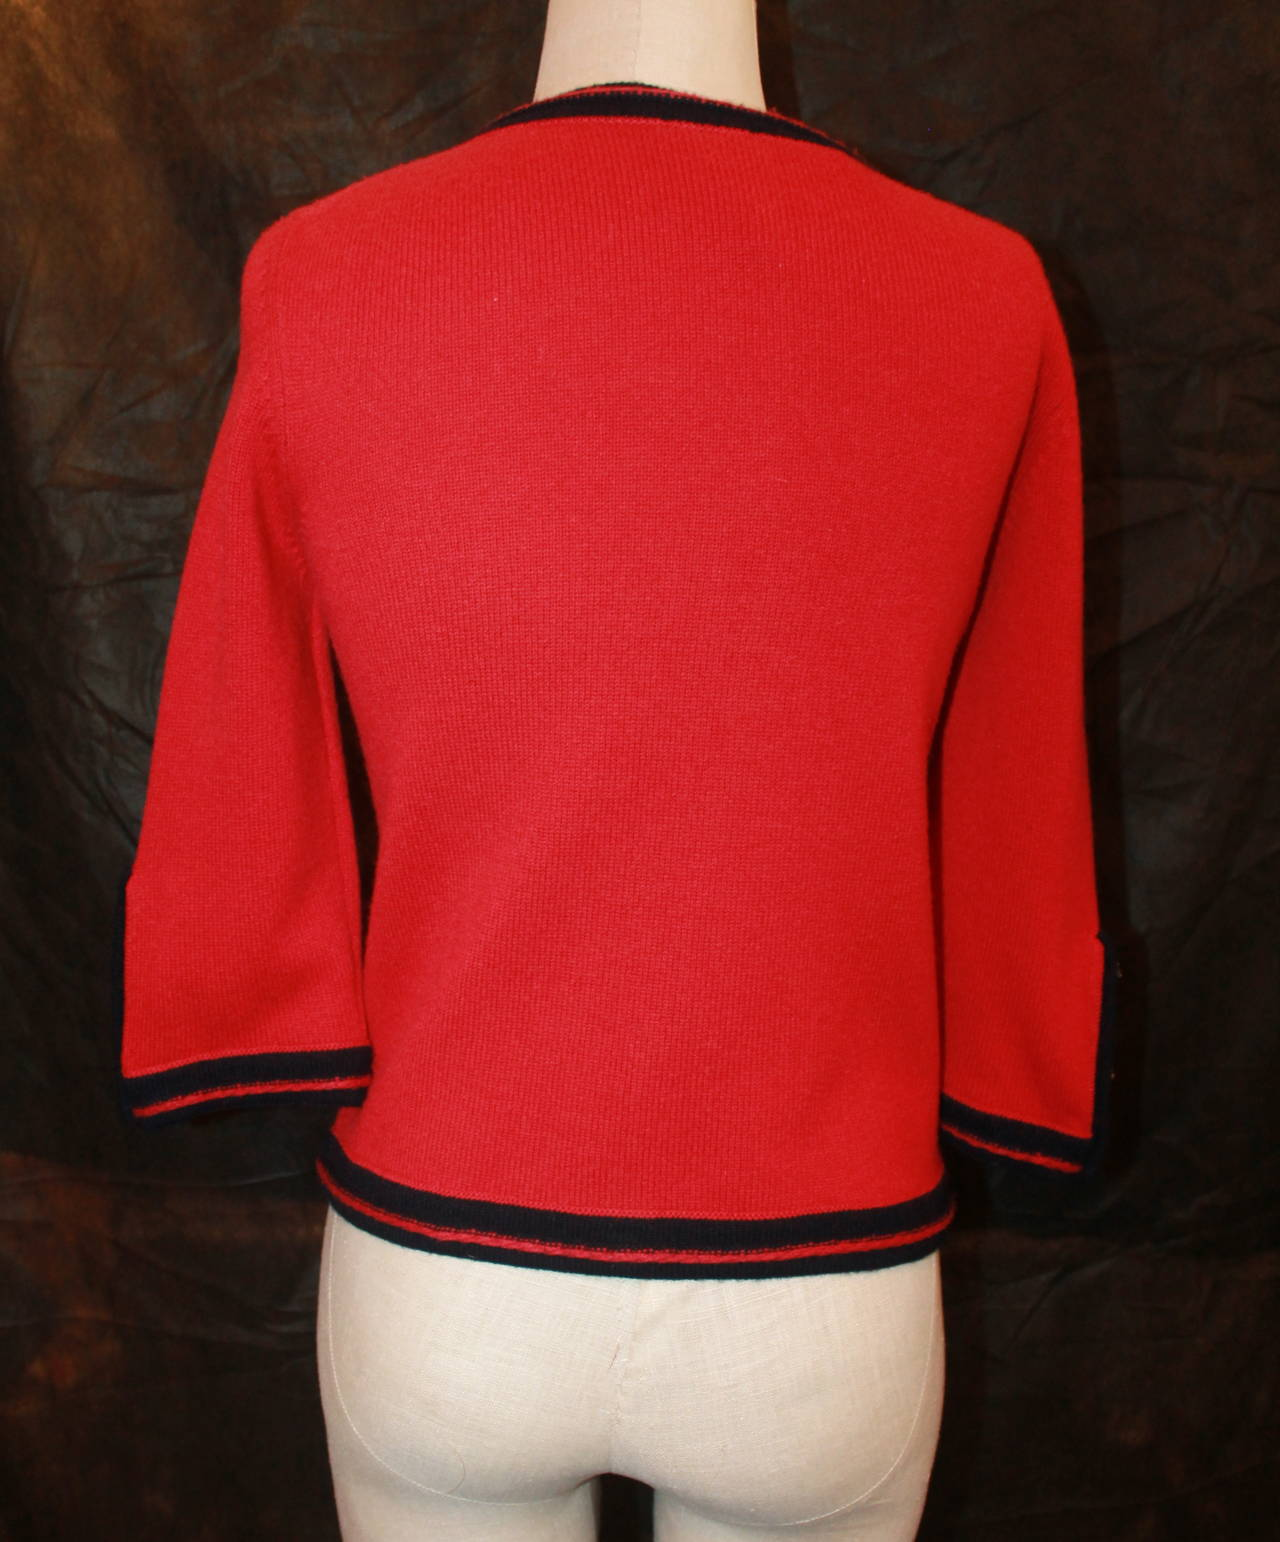 Chanel 1980s Red & Navy Cashmere Sweater 4